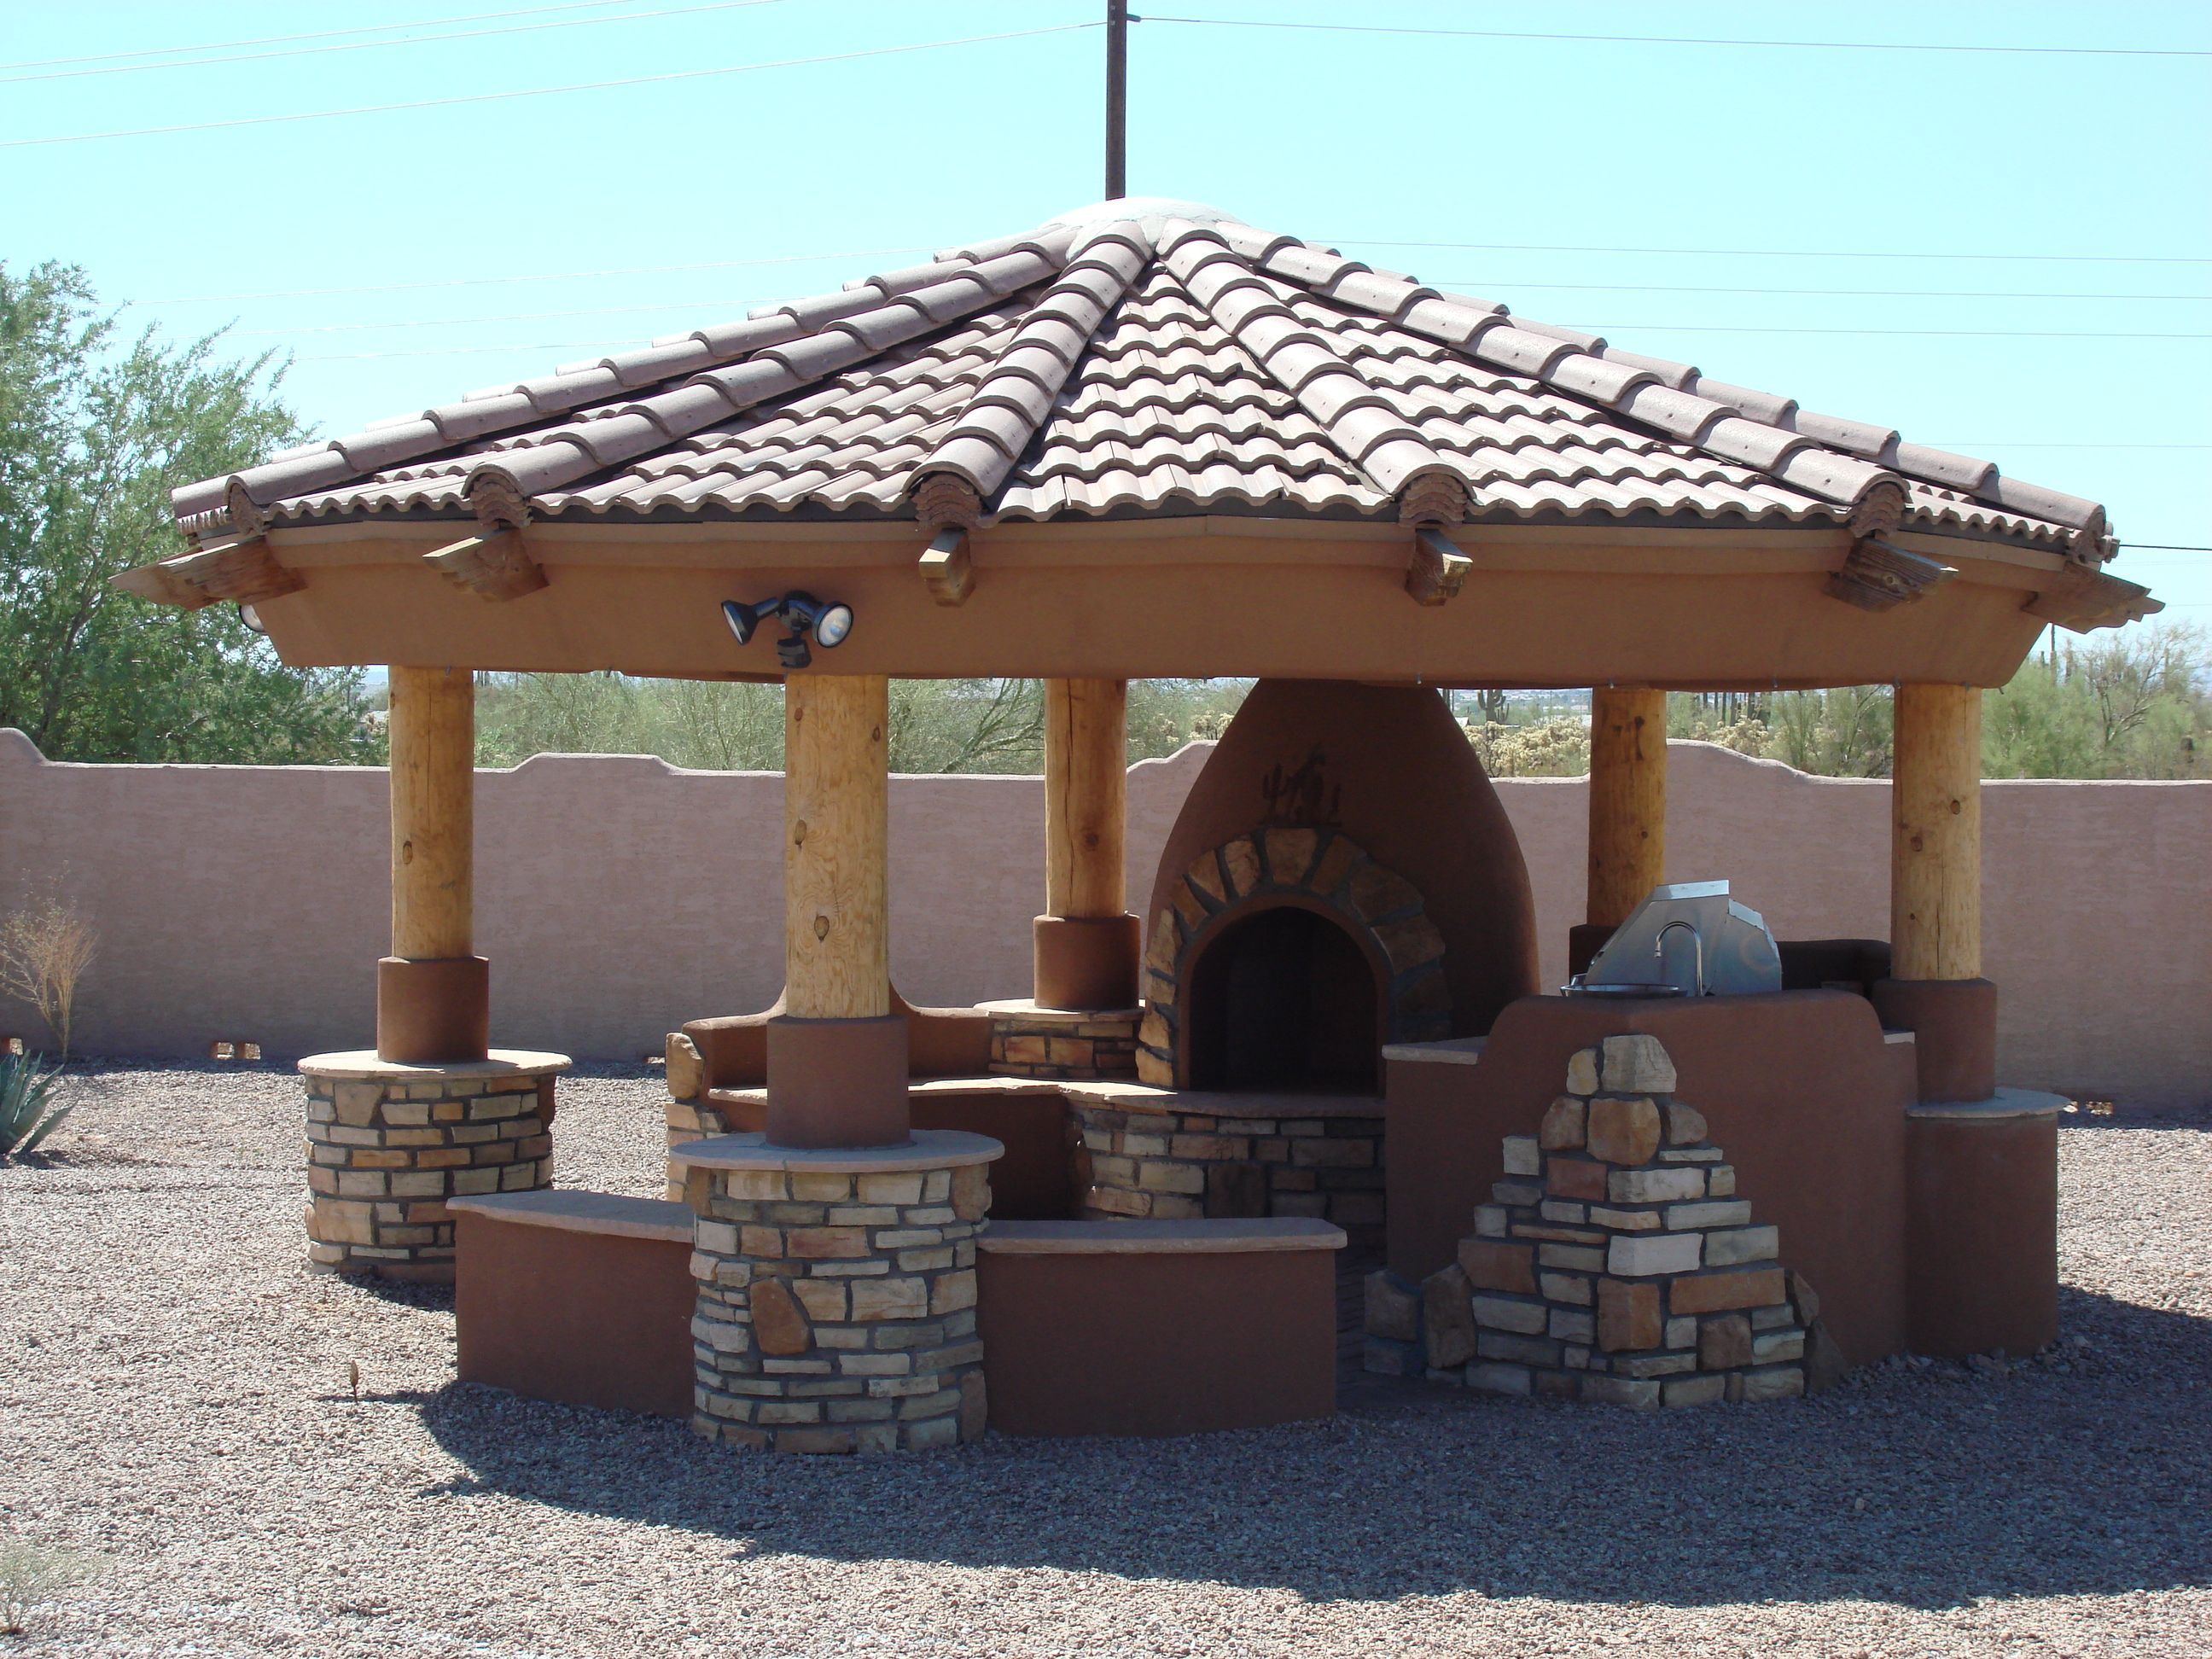 Outdoor fireplace gazebo fire pit gazebo plans http for Outdoor gazebo plans with fireplace